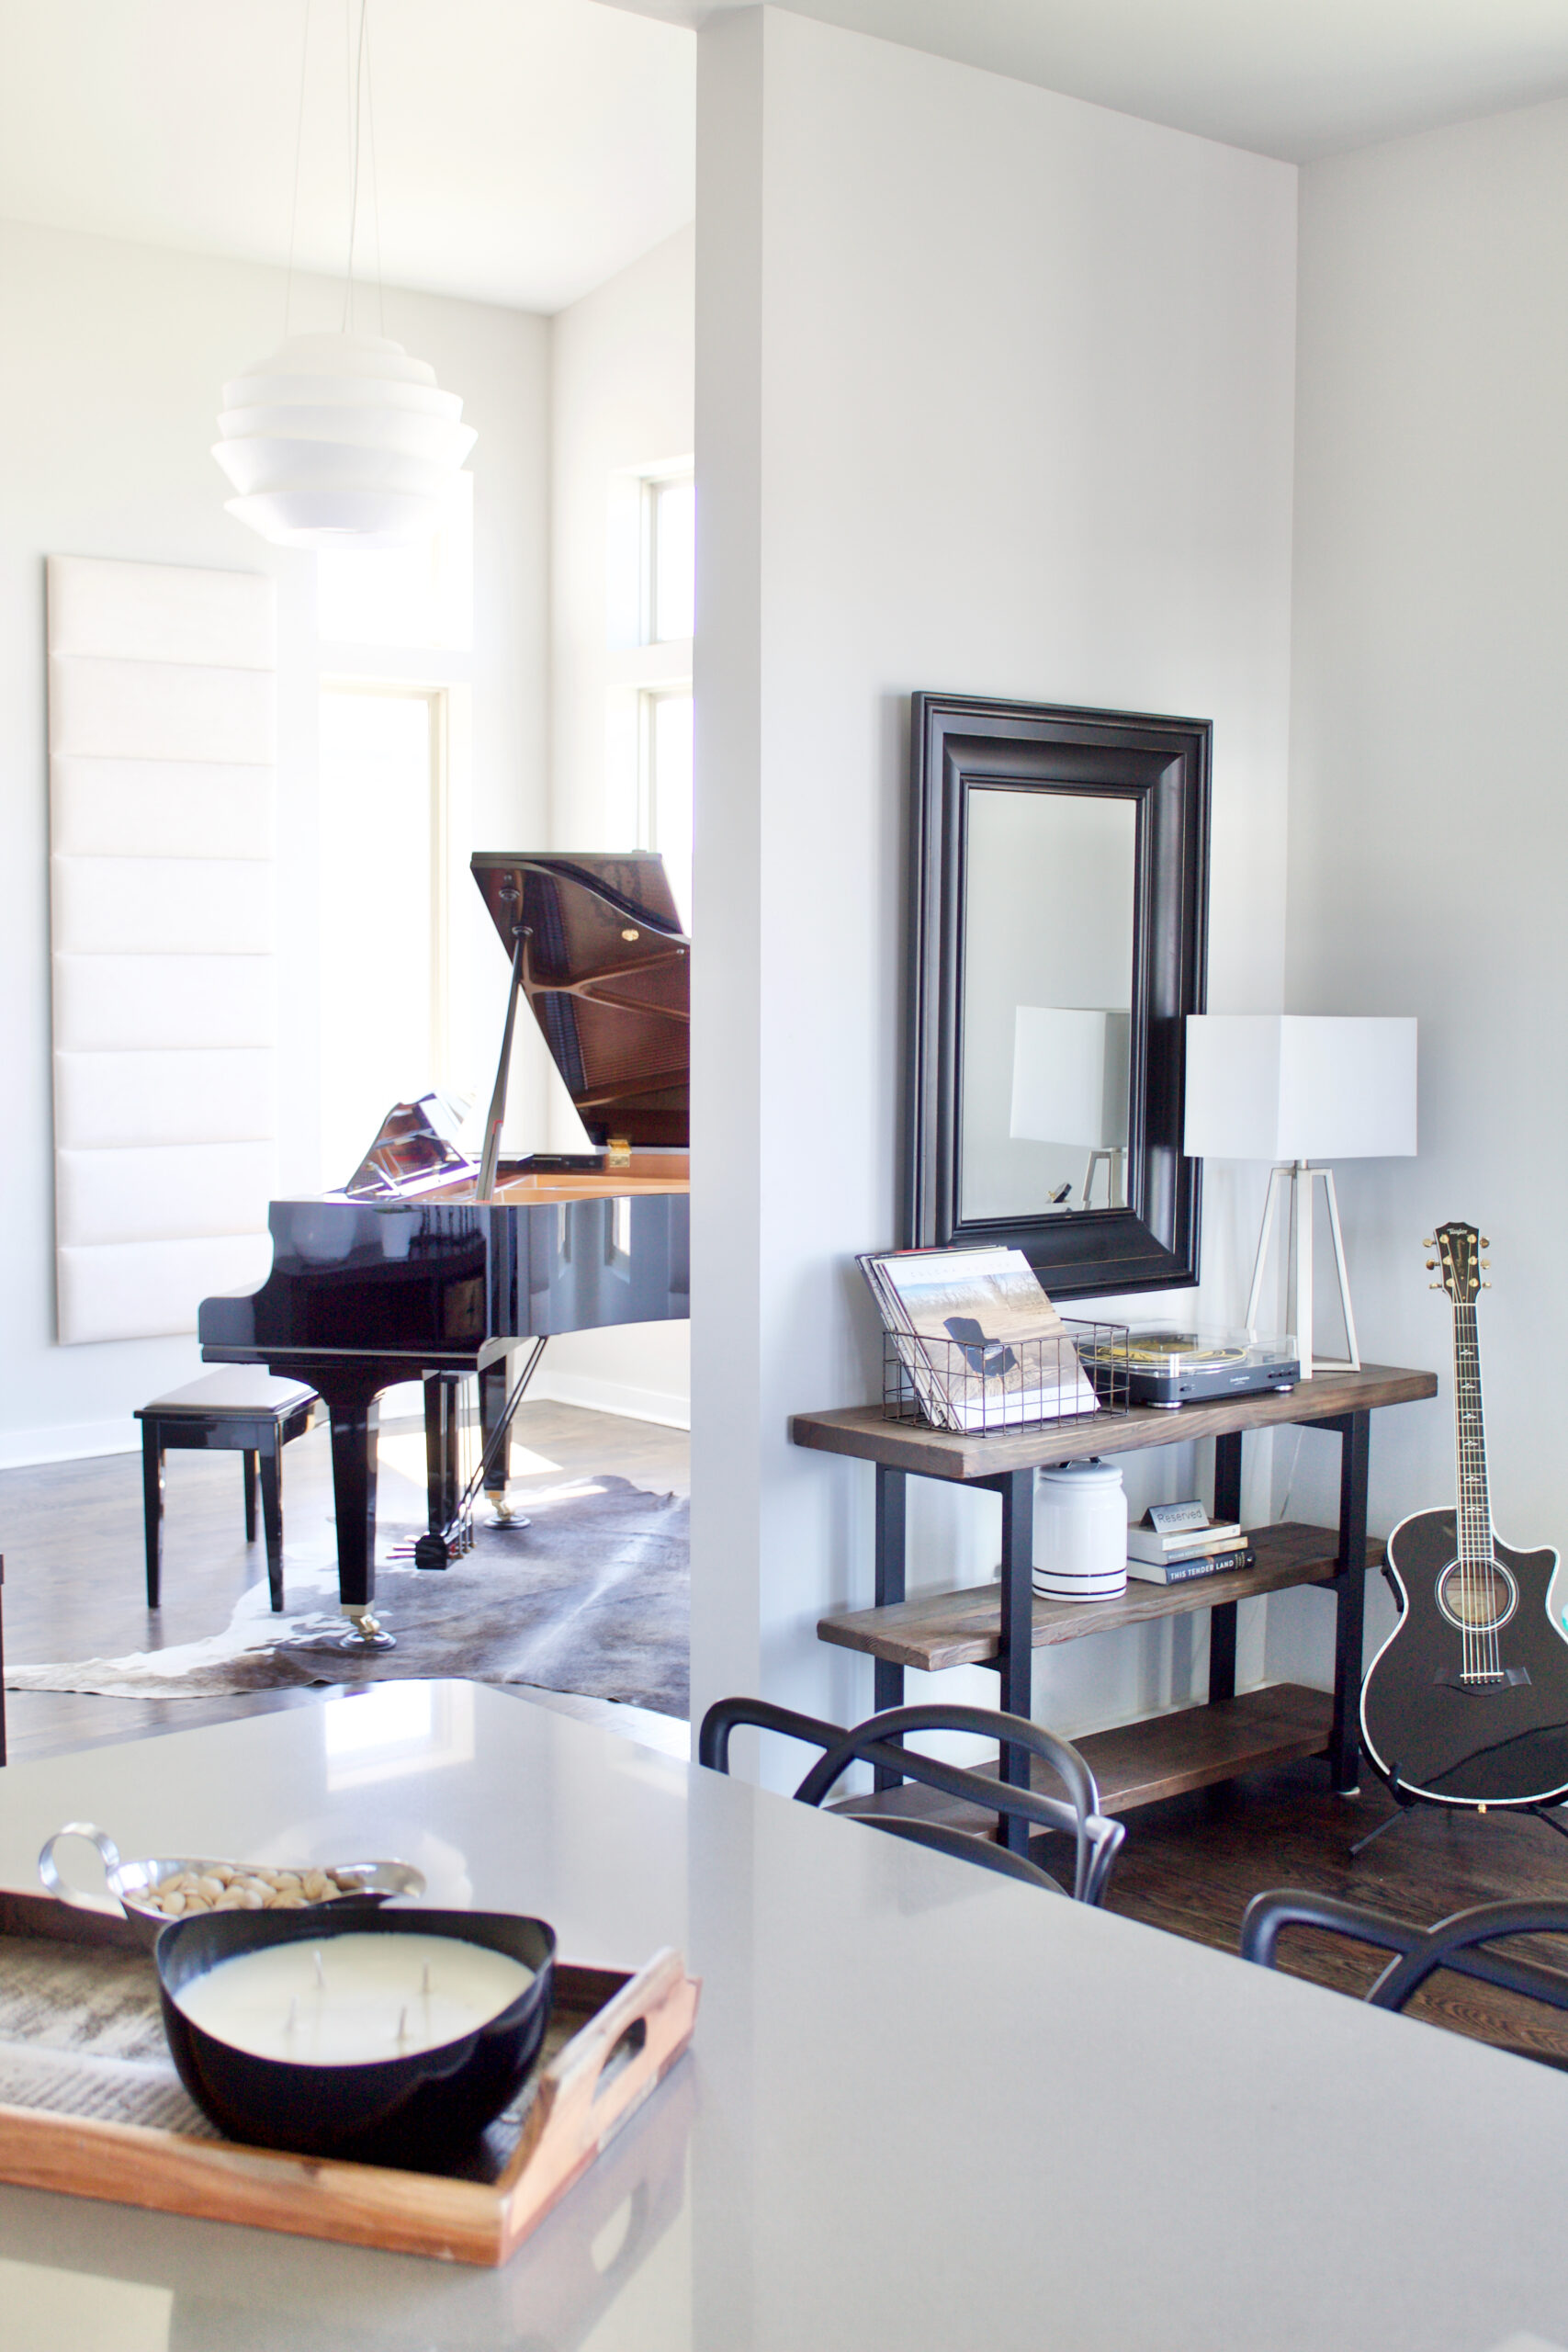 The foyer of our #MinimalModernSouthNashville project features modern entry lighting suspended over a baby grand piano with large windows on three walls and a sloped ceiling that reaches 15'H. The spherical pendant is made of white bands that diffuse the light and create a soft, dimensional glow. Light is also projected directly upward and downward to dramatically highlight the space, making it the perfect welcoming statement piece. Interior wall and ceiling color is Sherwin Williams Repose Gray SW 7015. The trim is bright white. #SherwinWilliamsReposeGrayInteriorWalls #ReposeGraySW7015 #interiorpaintcolor #lightgrayinteriorpaintcolors